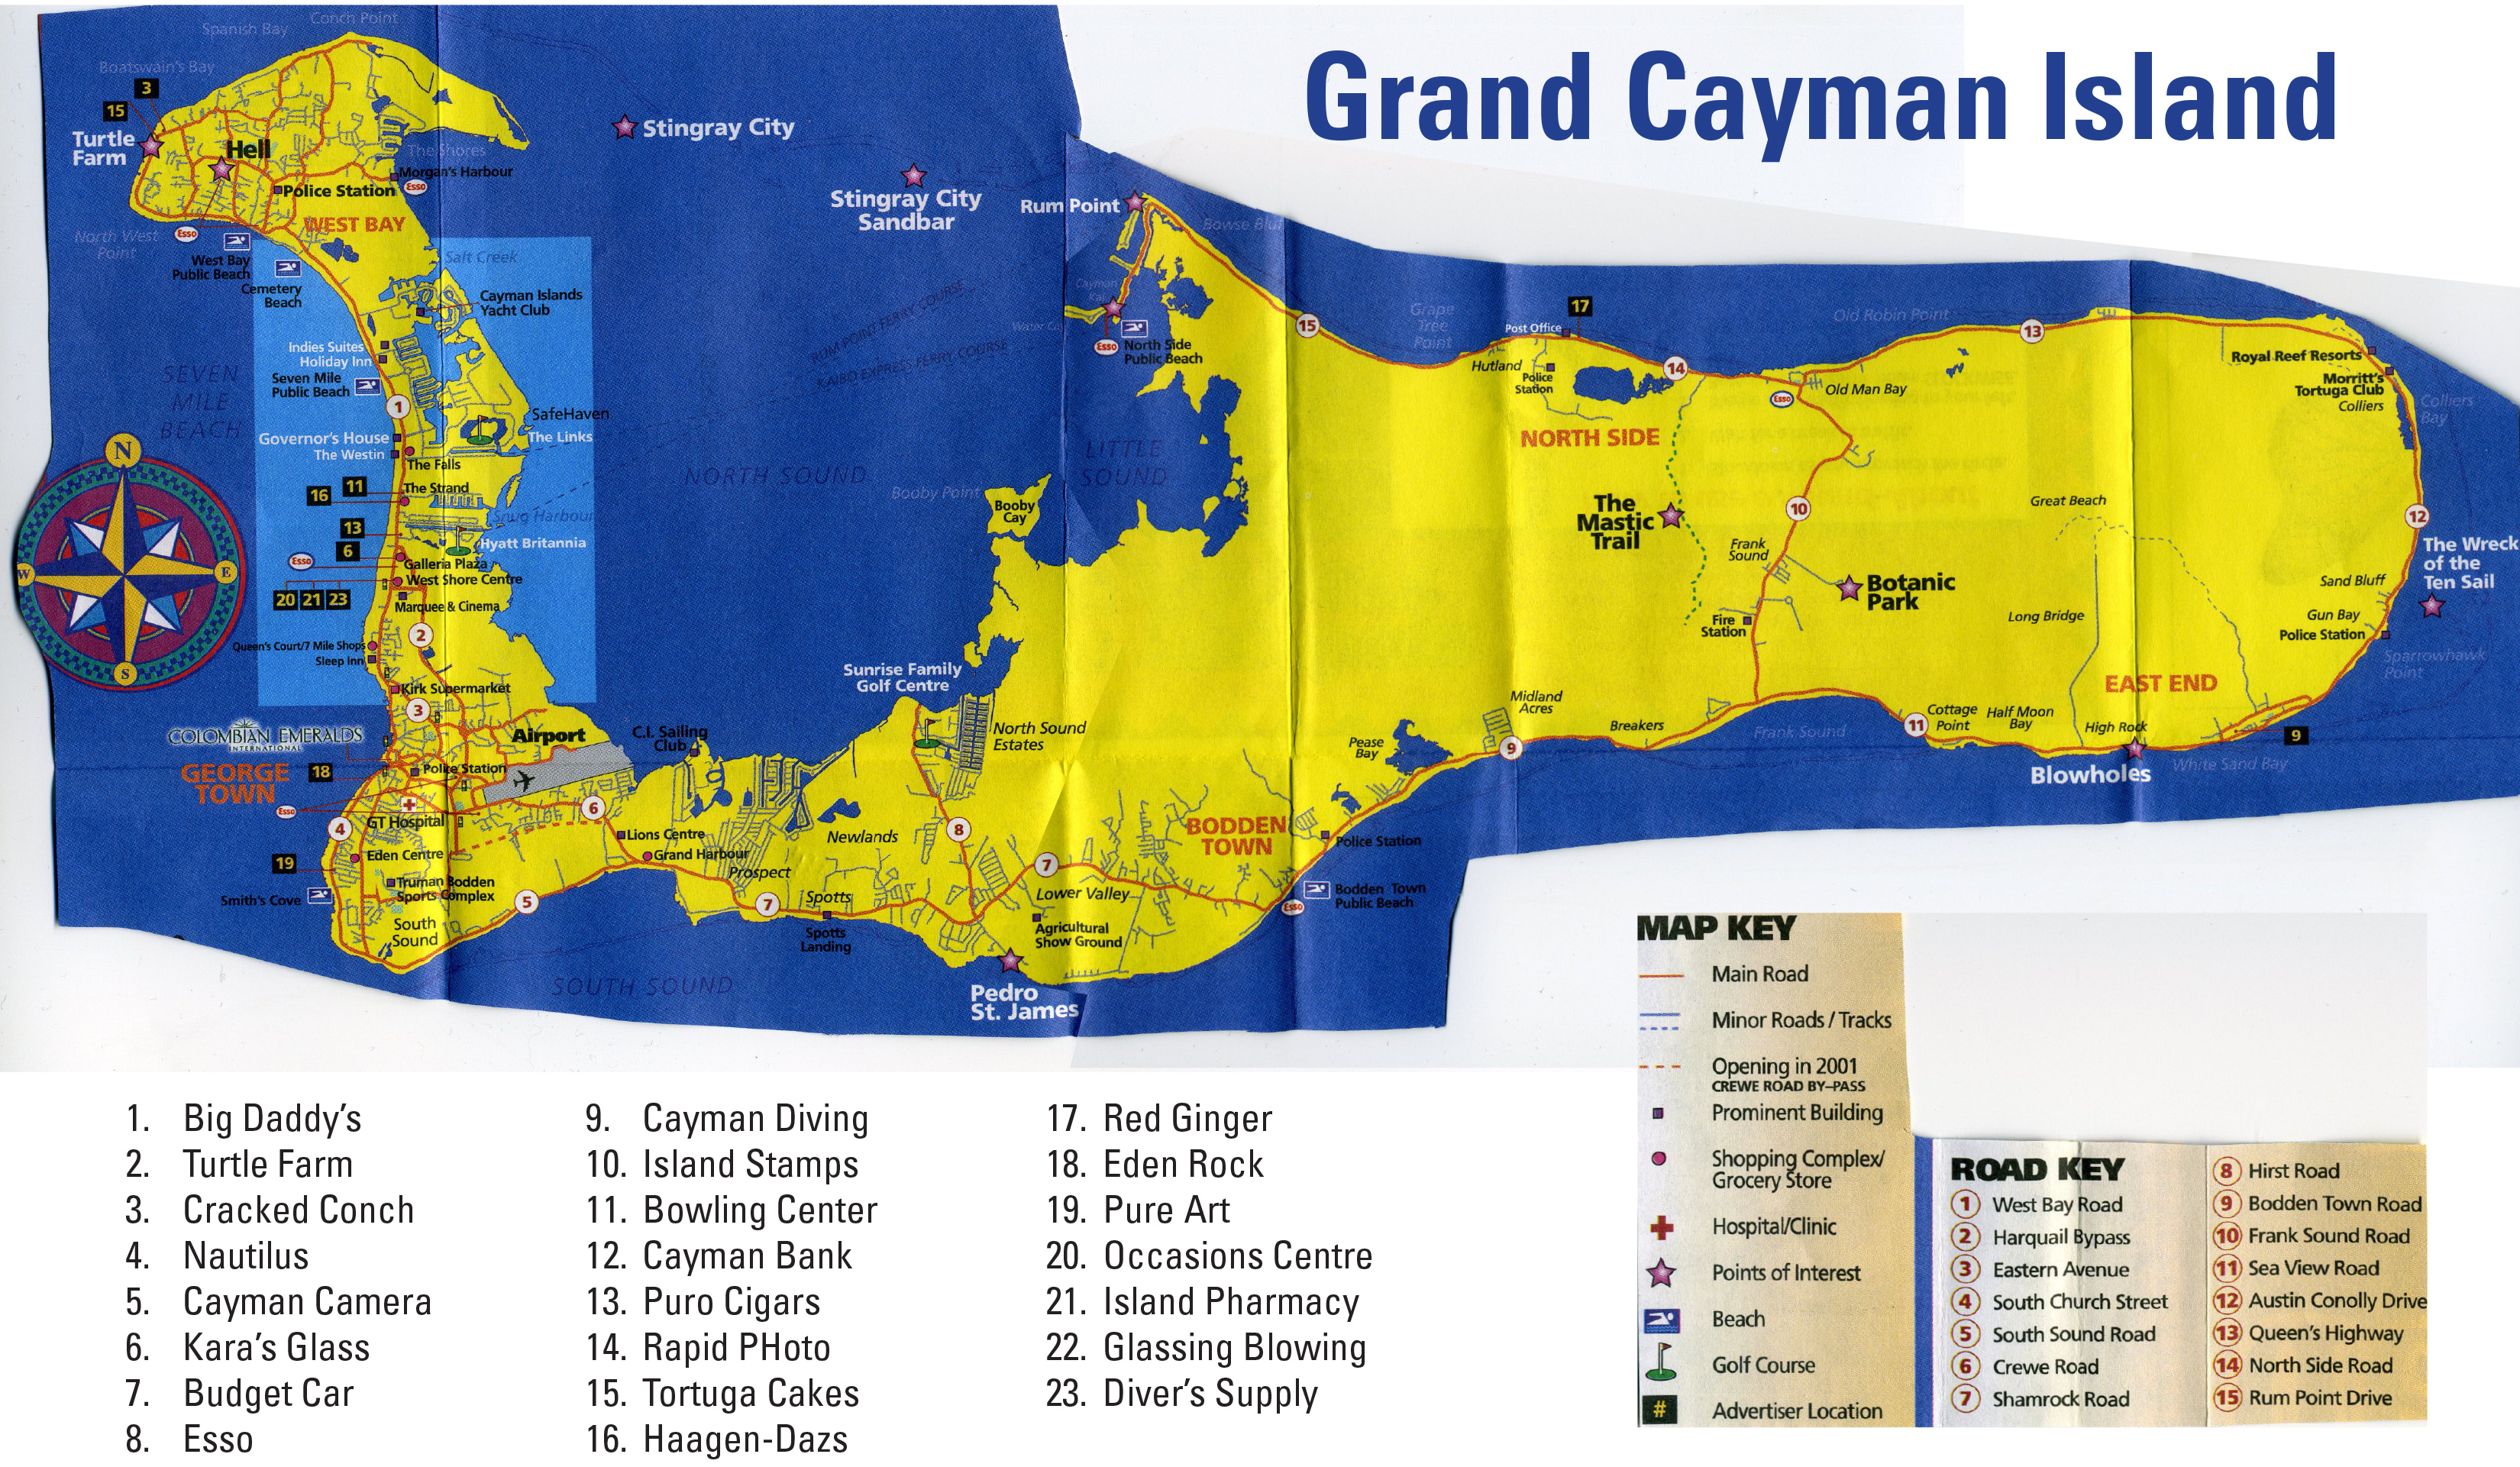 Grand Cayman Map Of Hotels on map of yosemite national park hotels, map of turks and caicos hotels, map of exuma hotels, map of asheville hotels, map of eleuthera hotels, map of us virgin islands hotels, map of st. kitts hotels, map of new york city hotels, map of vallarta hotels, map of san francisco hotels, map of cayo santa maria hotels, map of georgia hotels, map of long island hotels, map of positano hotels, map of wisconsin dells hotels, map of seven mile beach hotels, map of saratoga springs hotels, map of panama hotels, map of texas hotels, map of great barrier reef hotels,